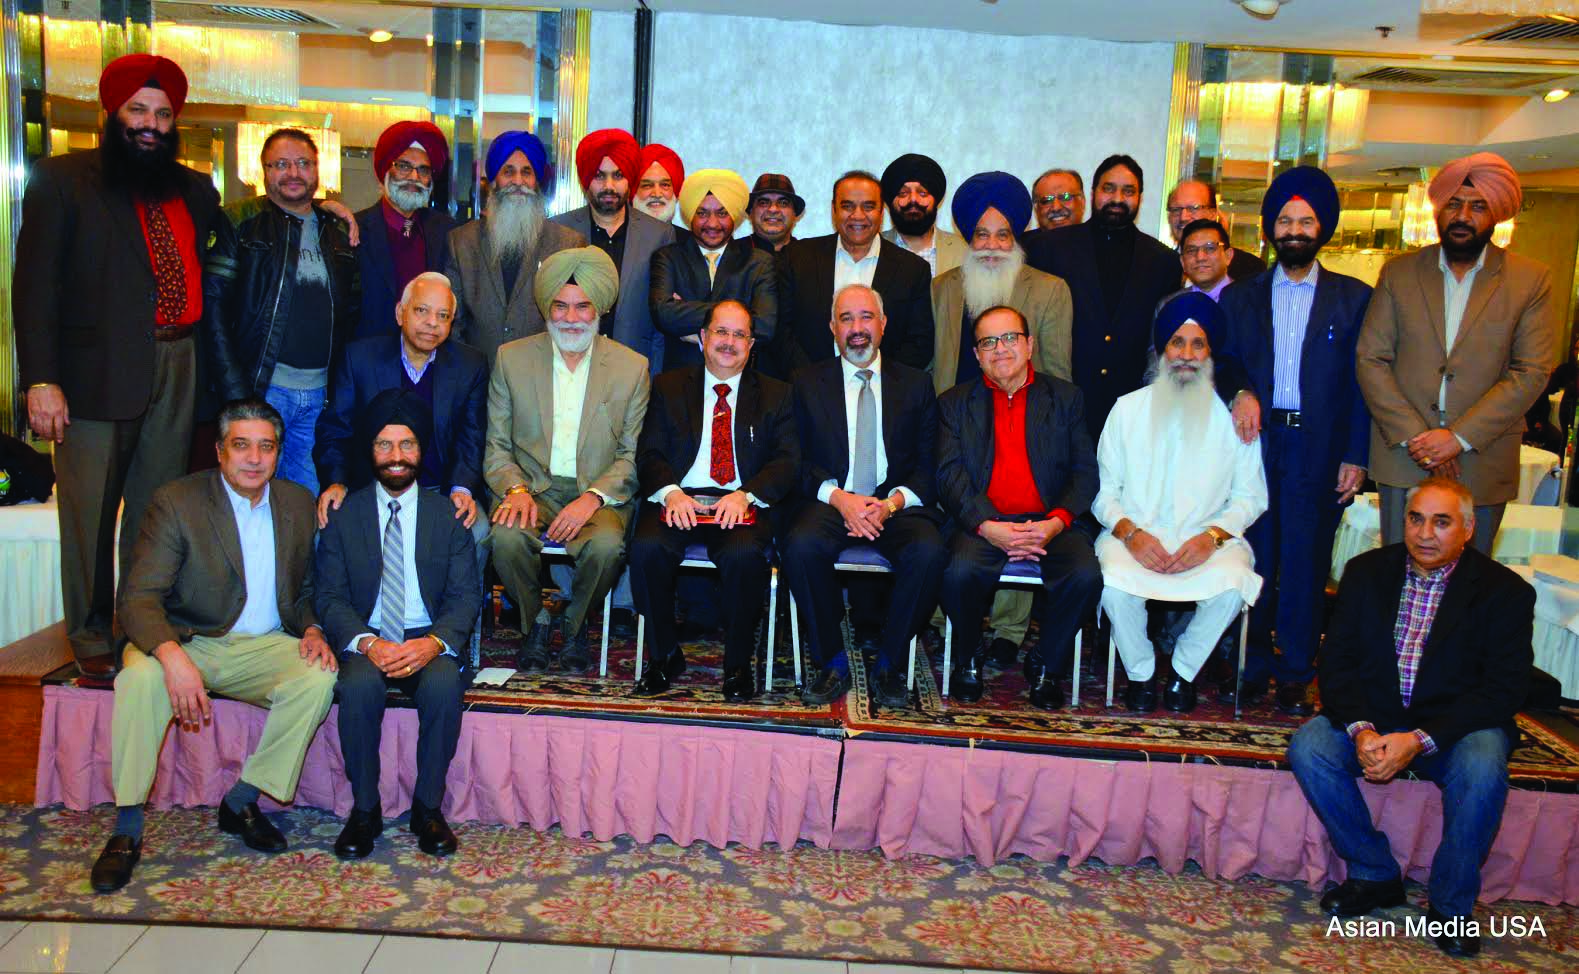 sikh-community-gives-farewell-to-outgoing-consul-general-sayeed-1